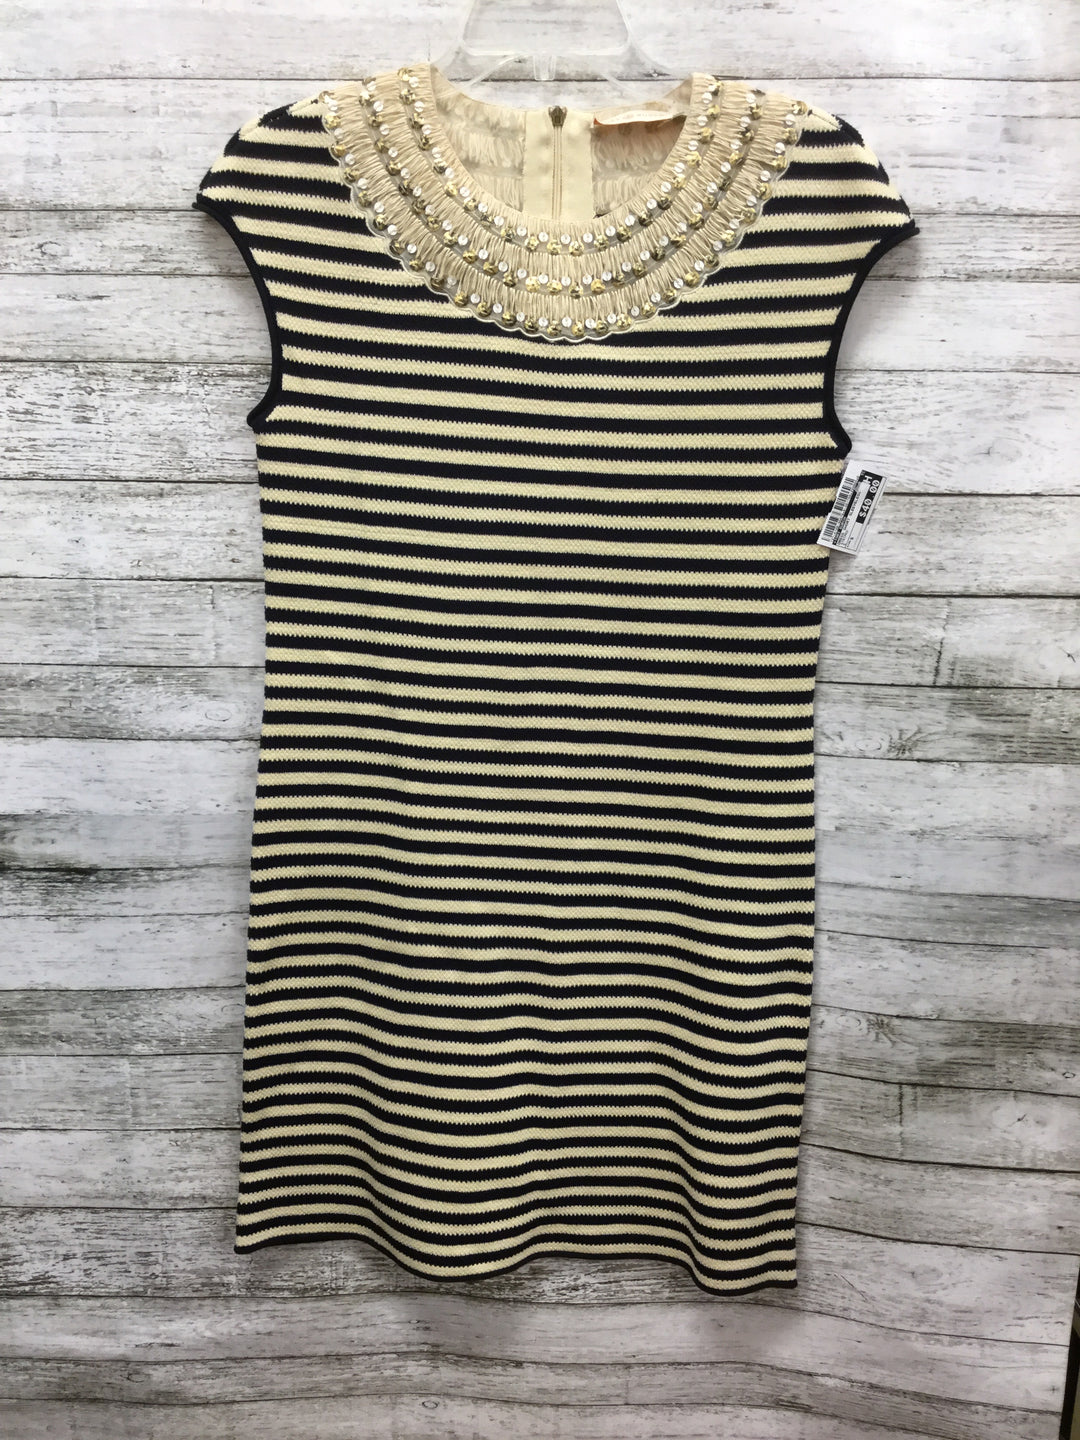 Primary Photo - BRAND: TORY BURCH , STYLE: DRESS SHORT SLEEVELESS , COLOR: STRIPED , SIZE: S , SKU: 127-4169-35679, , CREAM AND BLACK KNIT TORY BURCH DRESS! SEQUIN TRIM DETAIL AROUND NECK AND CAP SLEEVES.